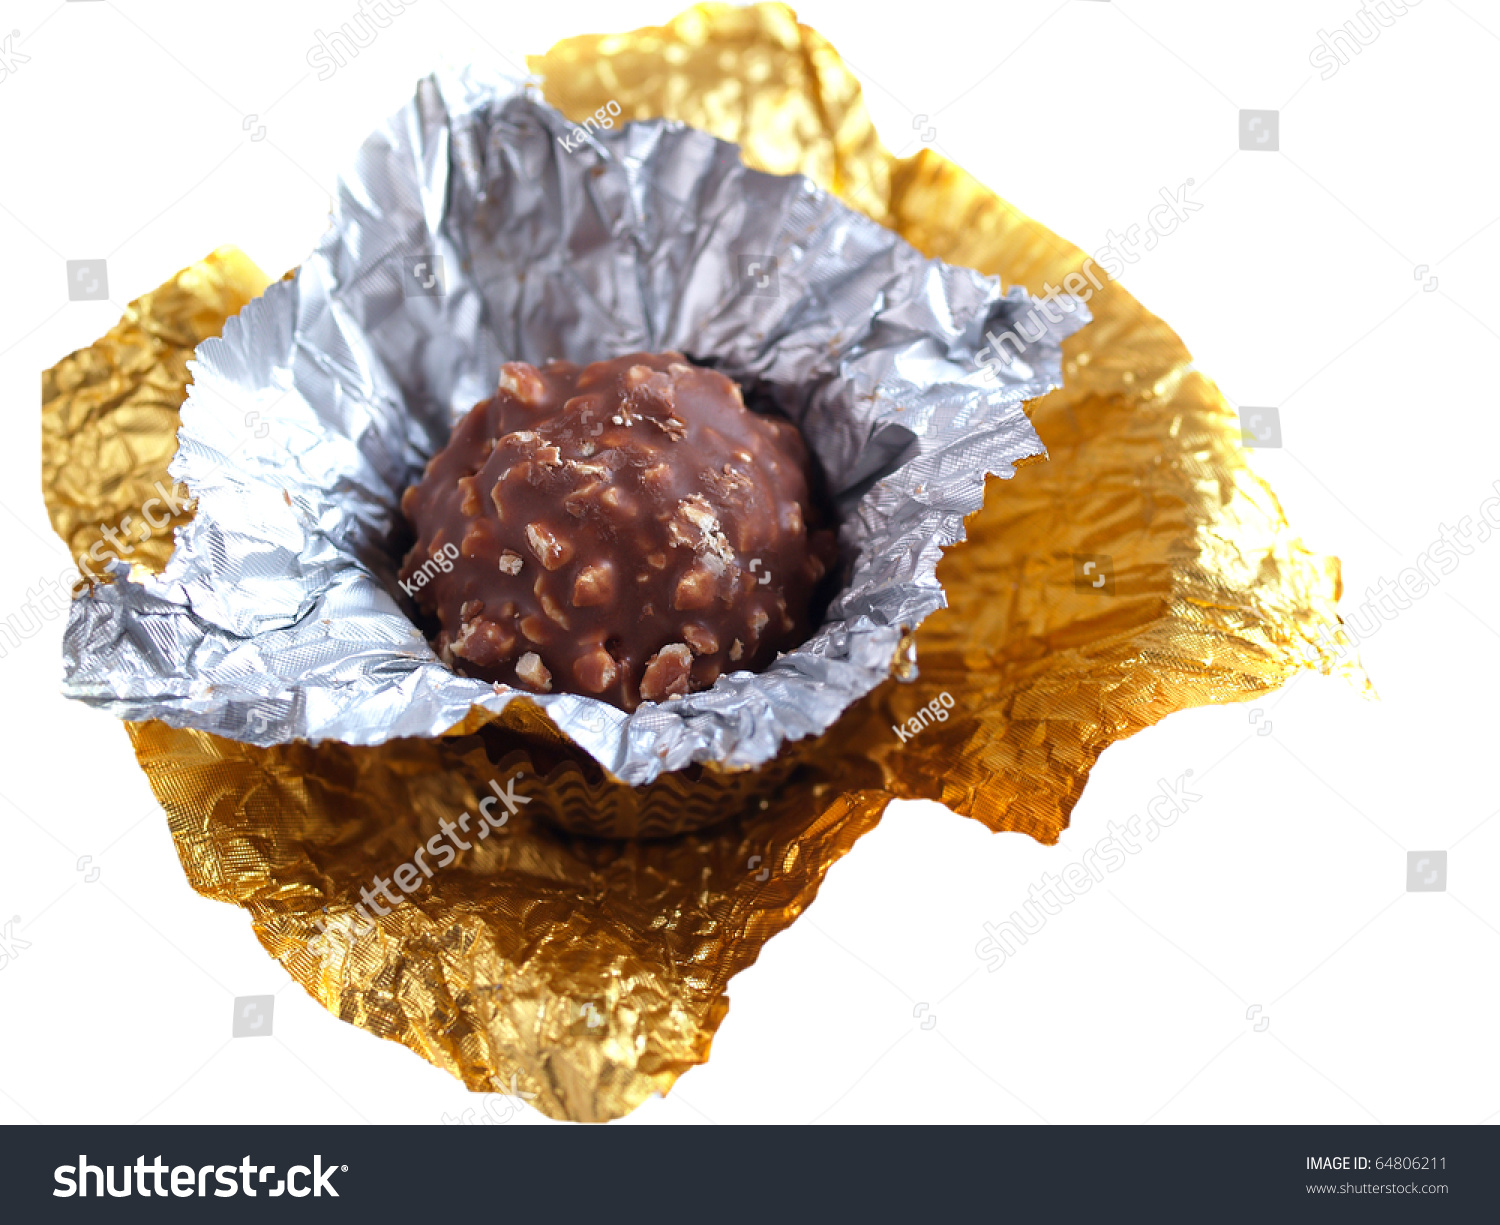 Candy Chocolate Wrapper Stock Photo 64806211 - Shutterstock